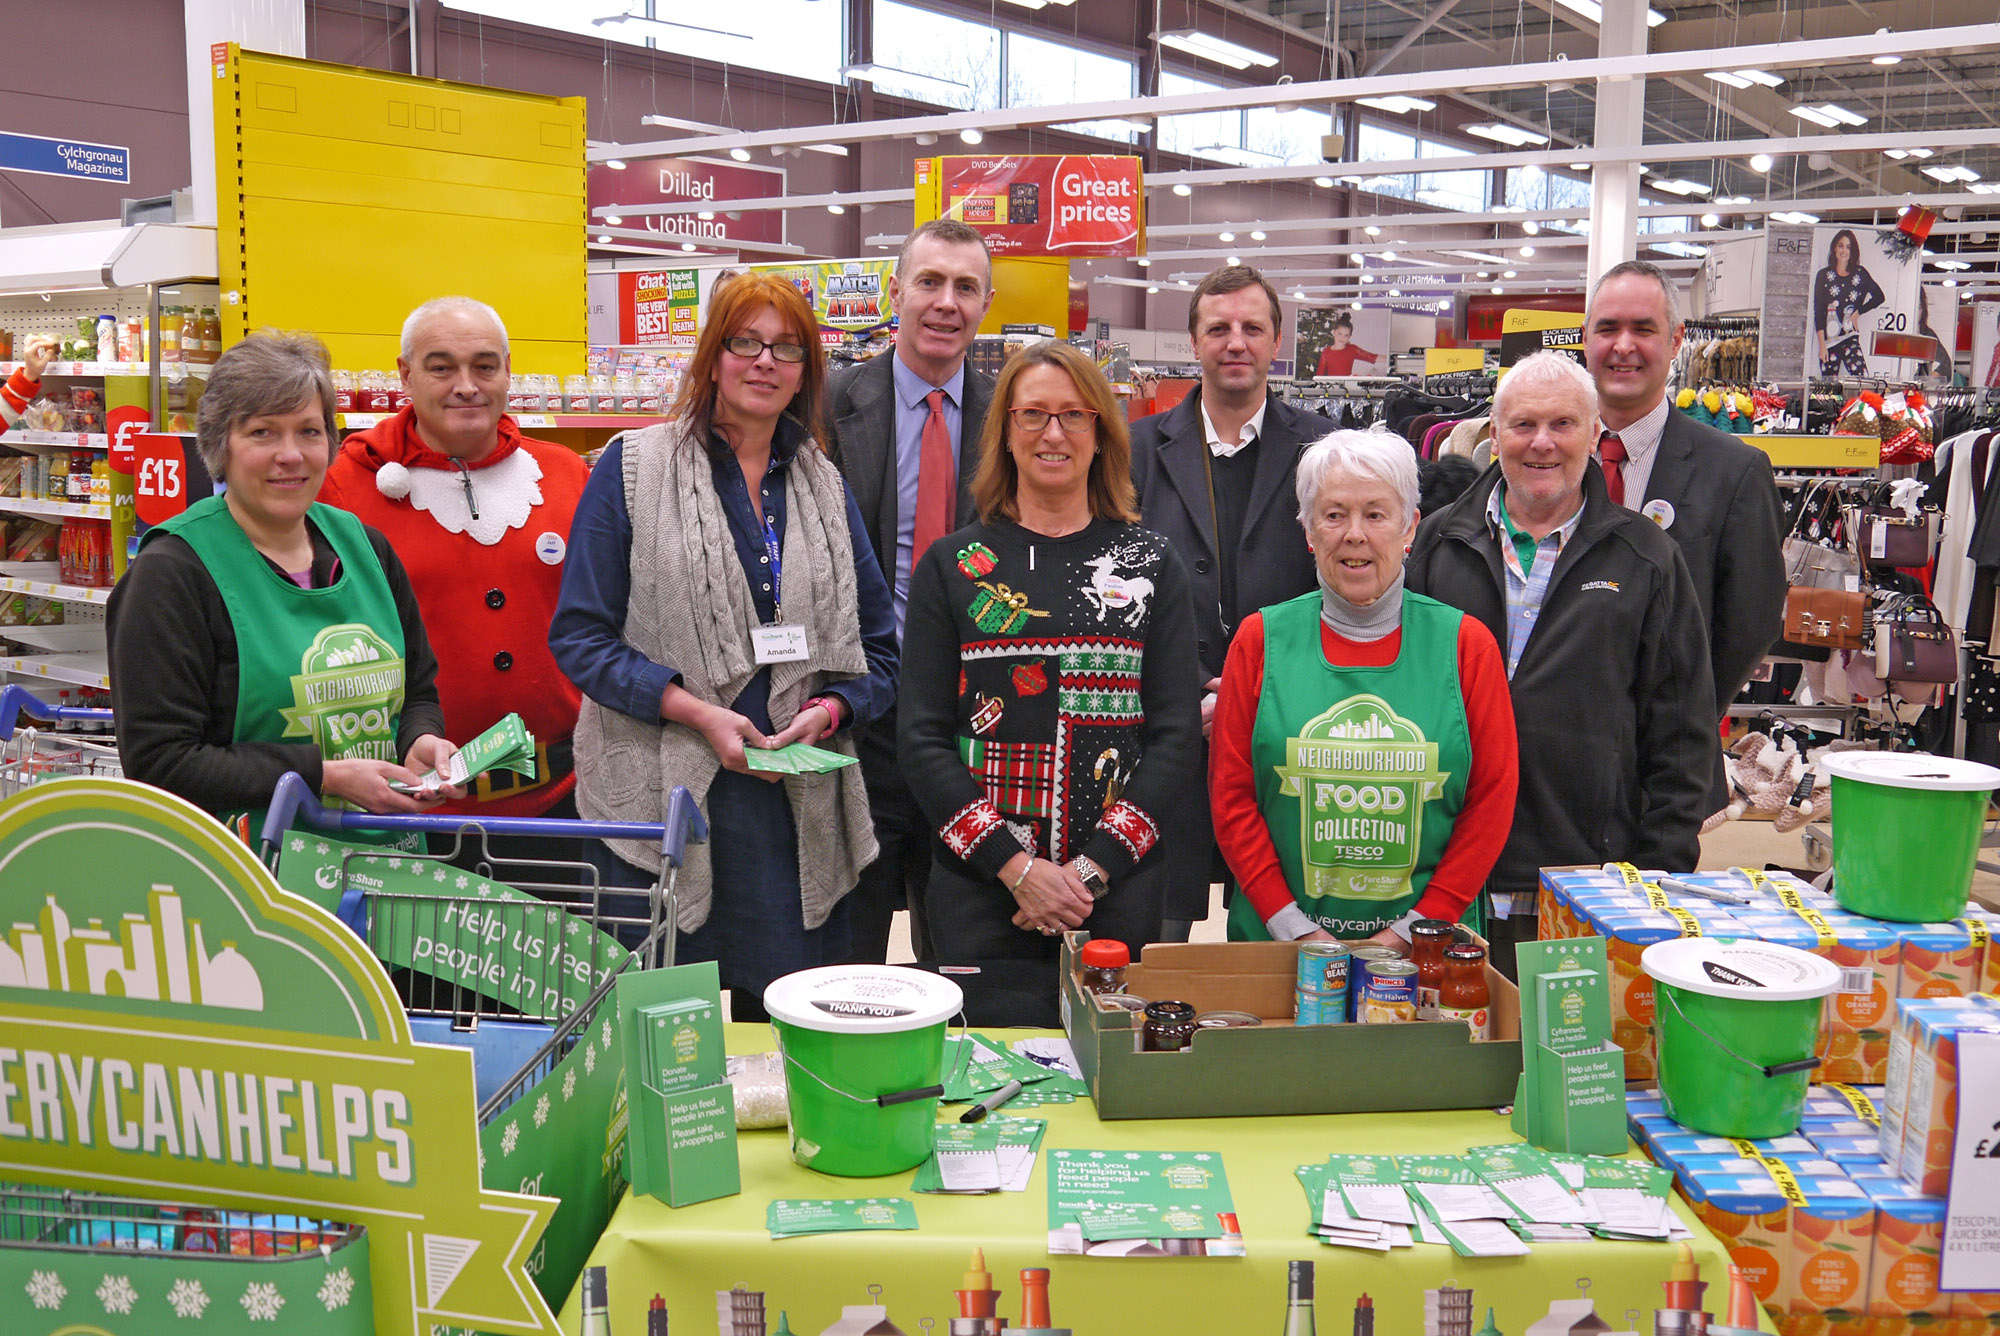 Politicians Support Food Bank Volunteers The